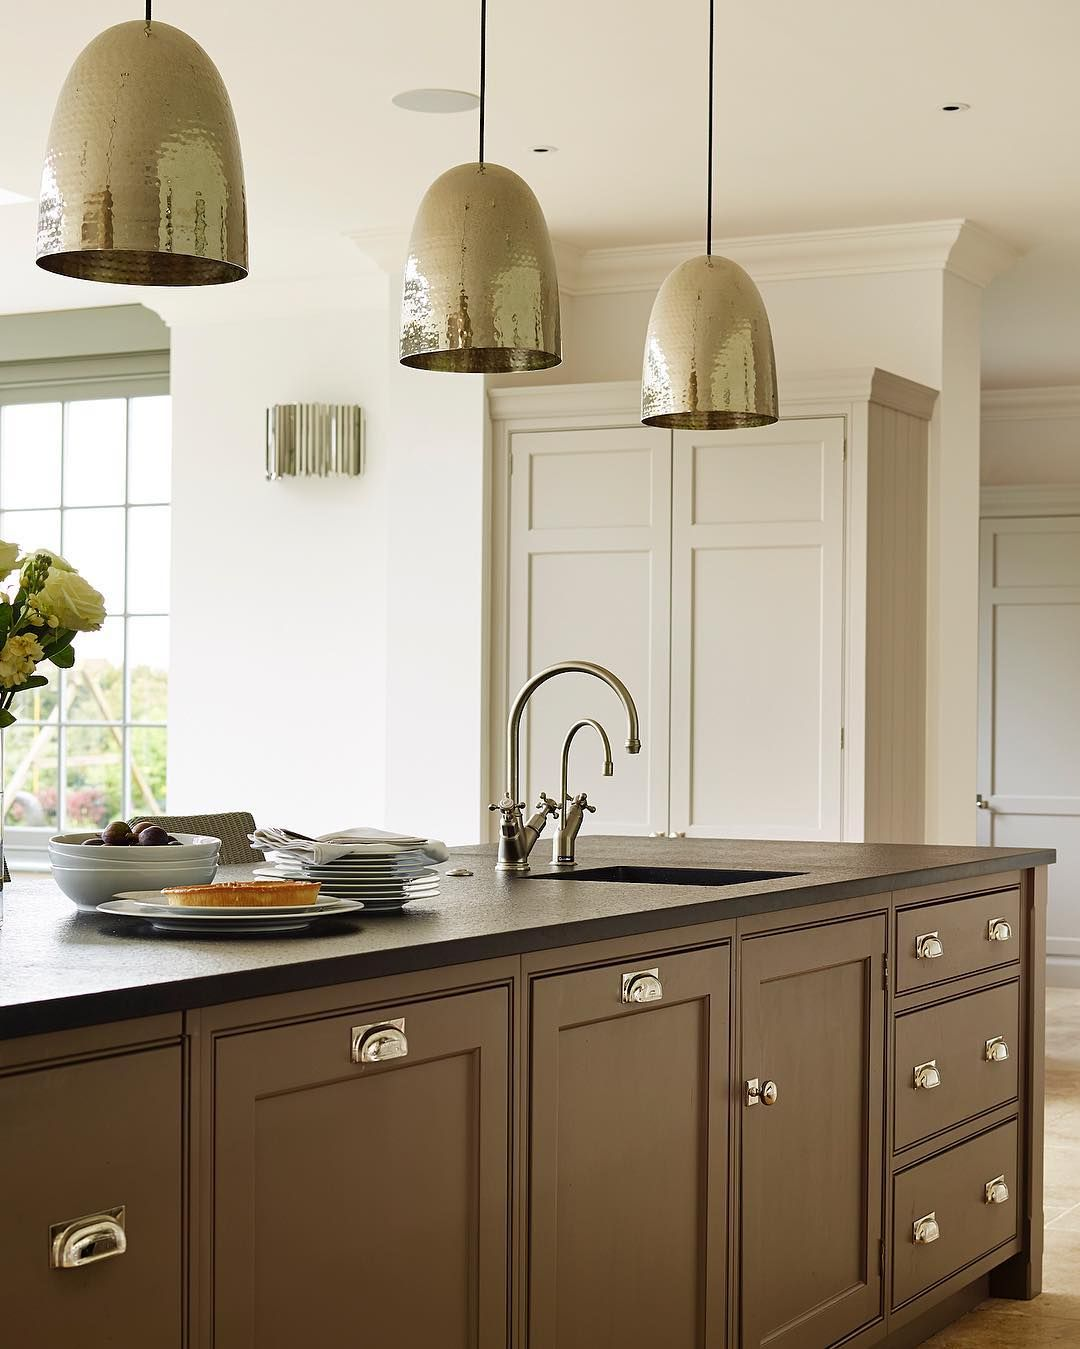 Wickes Kitchen Pendant Lights: Design - Lighting